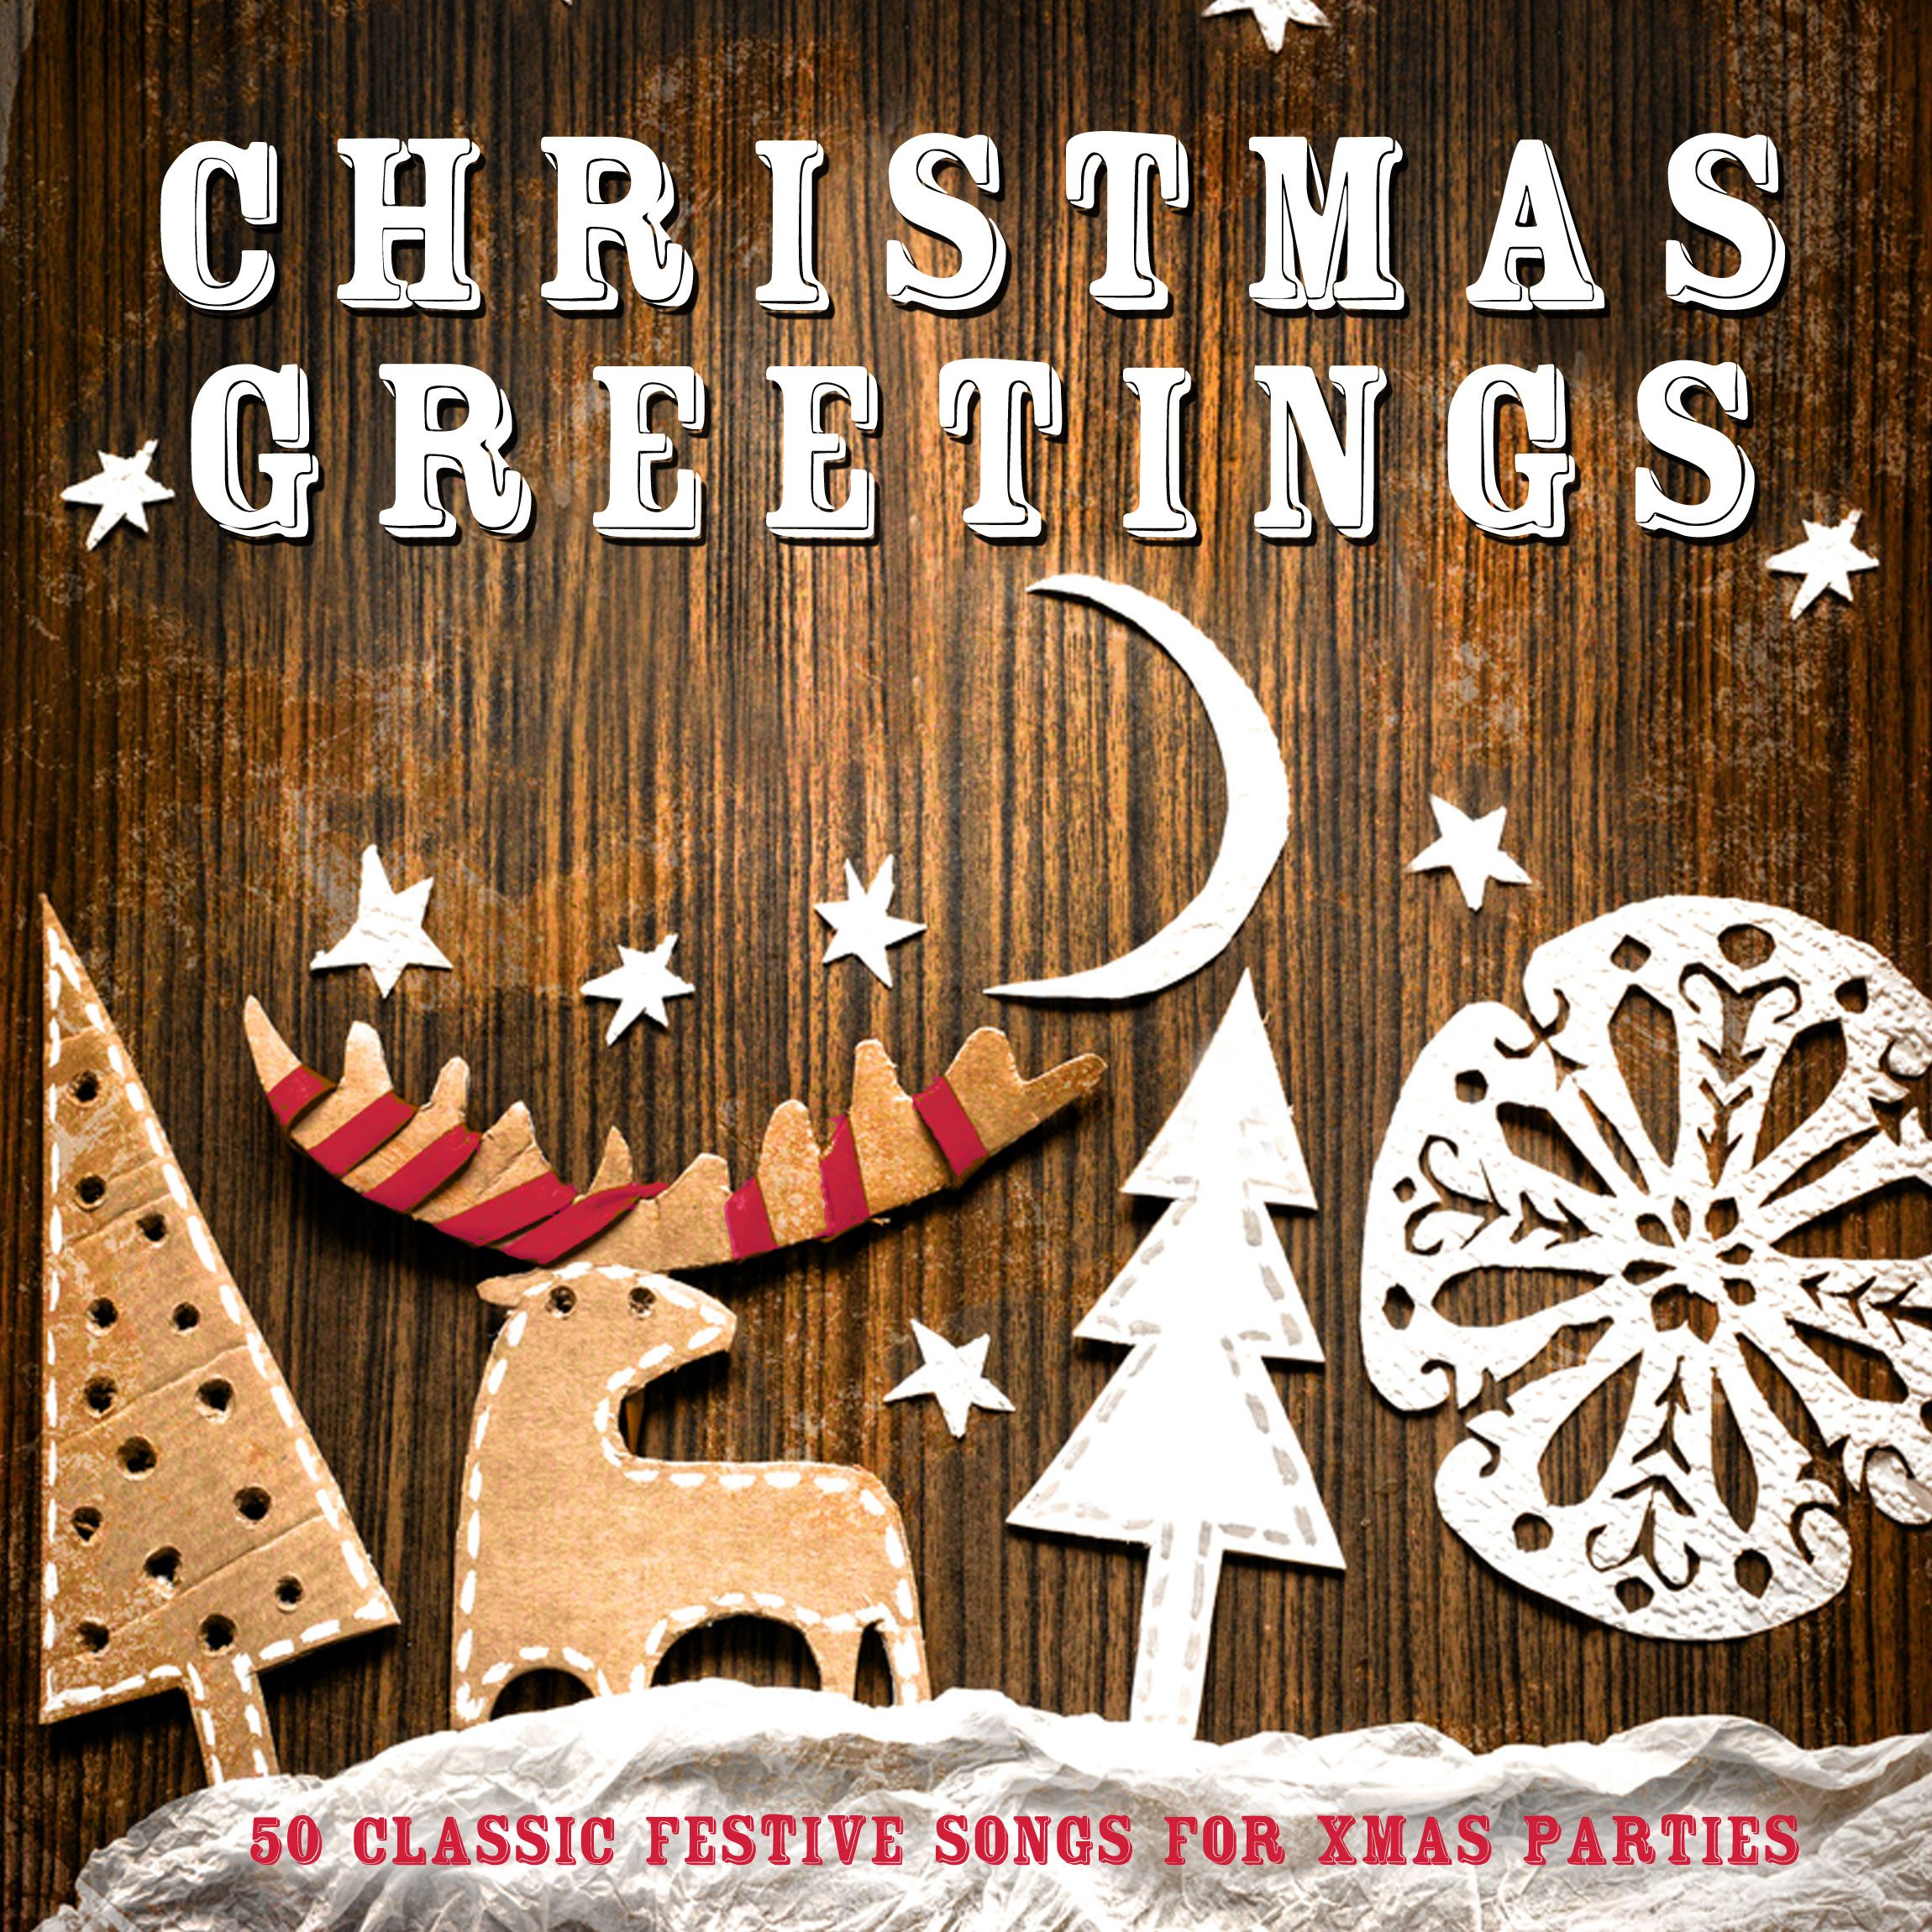 50 Classic Festive Songs Only 249 On This Great Christmas